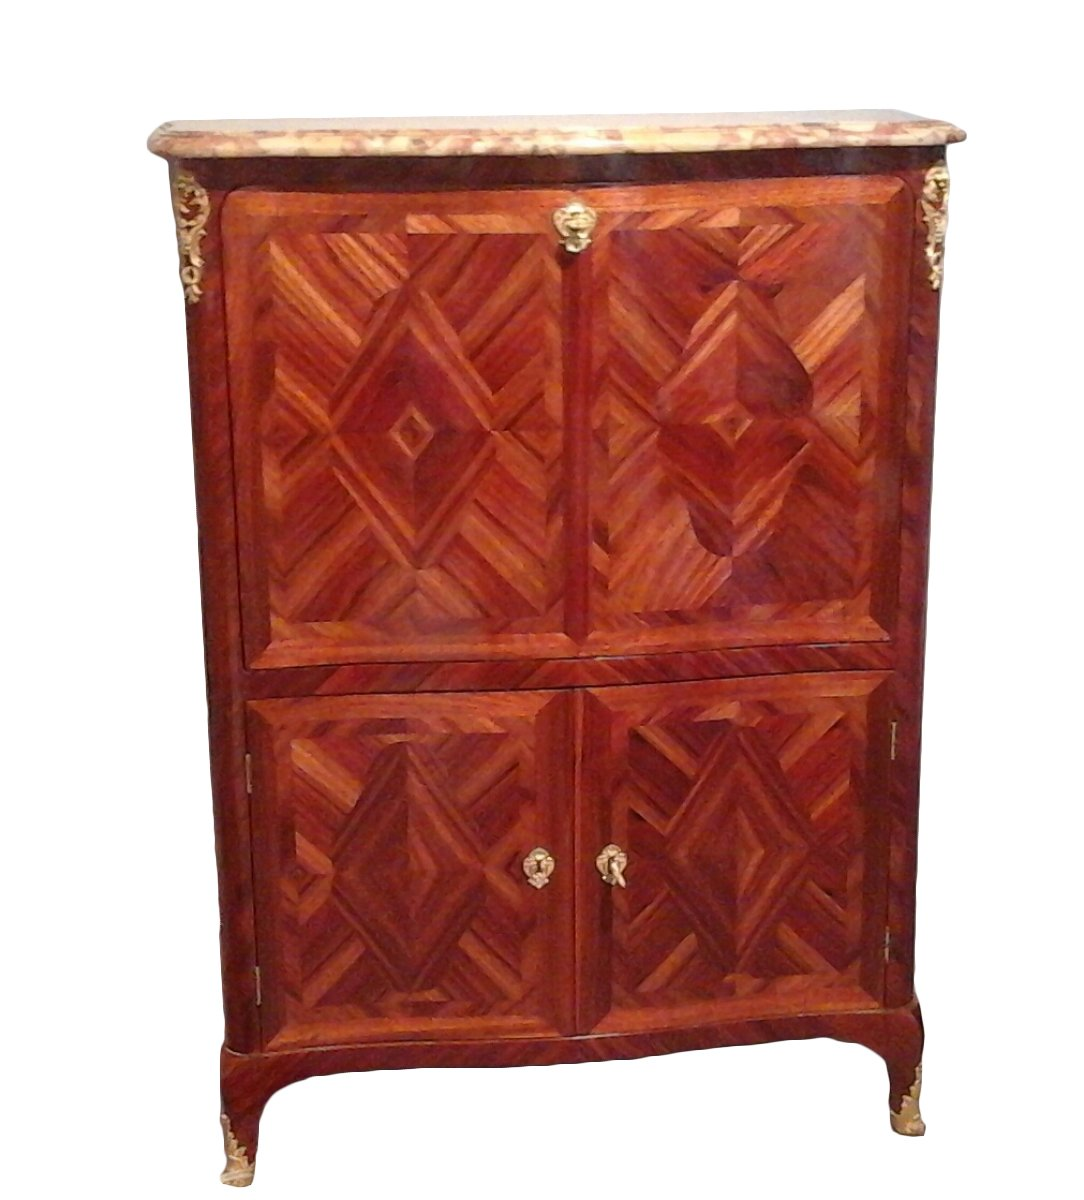 secr taire en armoire d 39 poque louis xv estampill delorme xviiie si cle. Black Bedroom Furniture Sets. Home Design Ideas